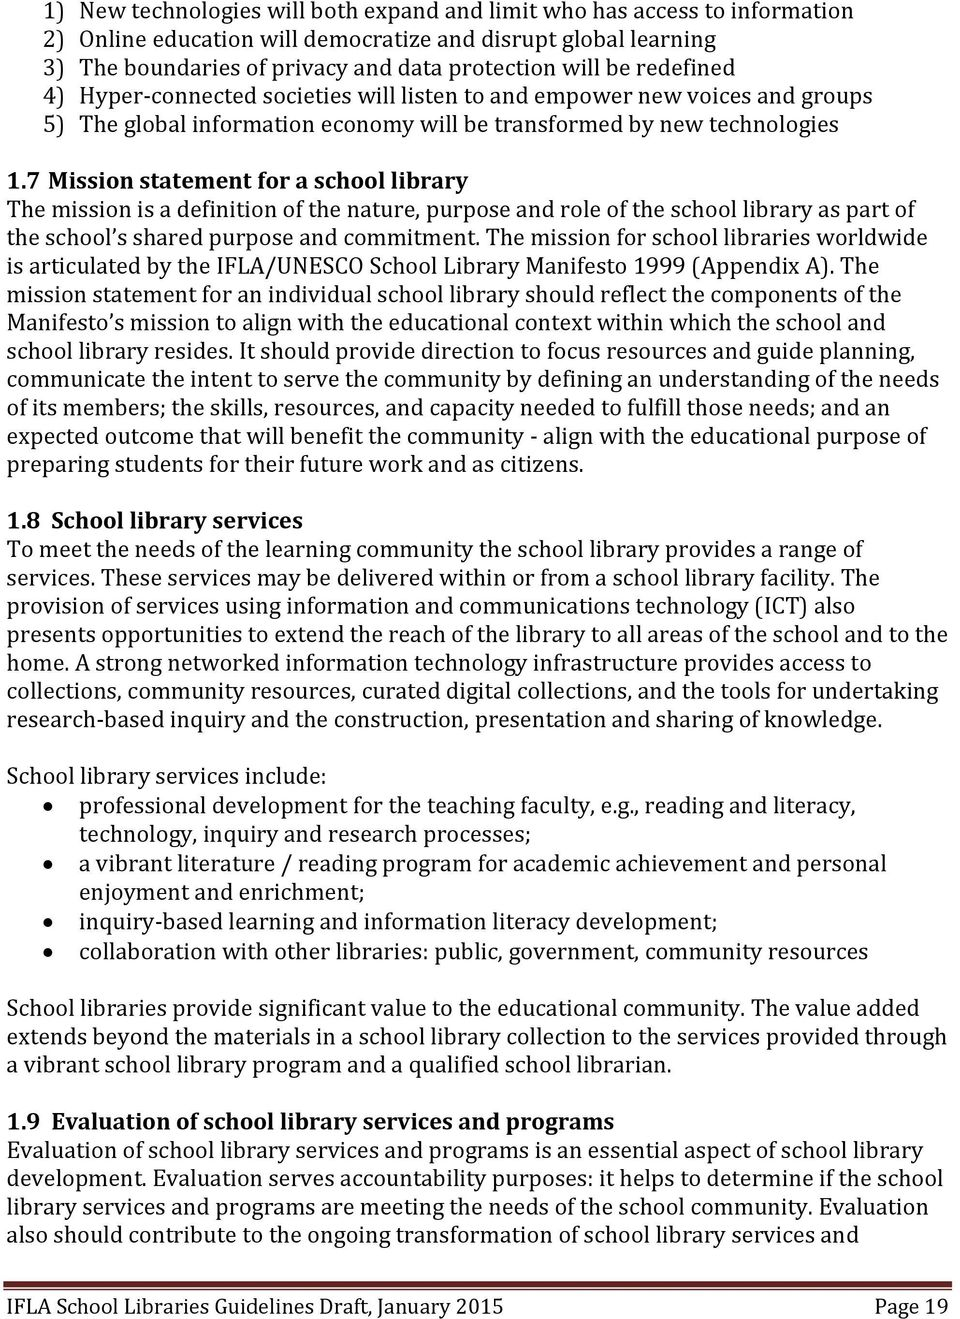 7 Mission statement for a school library The mission is a definition of the nature, purpose and role of the school library as part of the school s shared purpose and commitment.